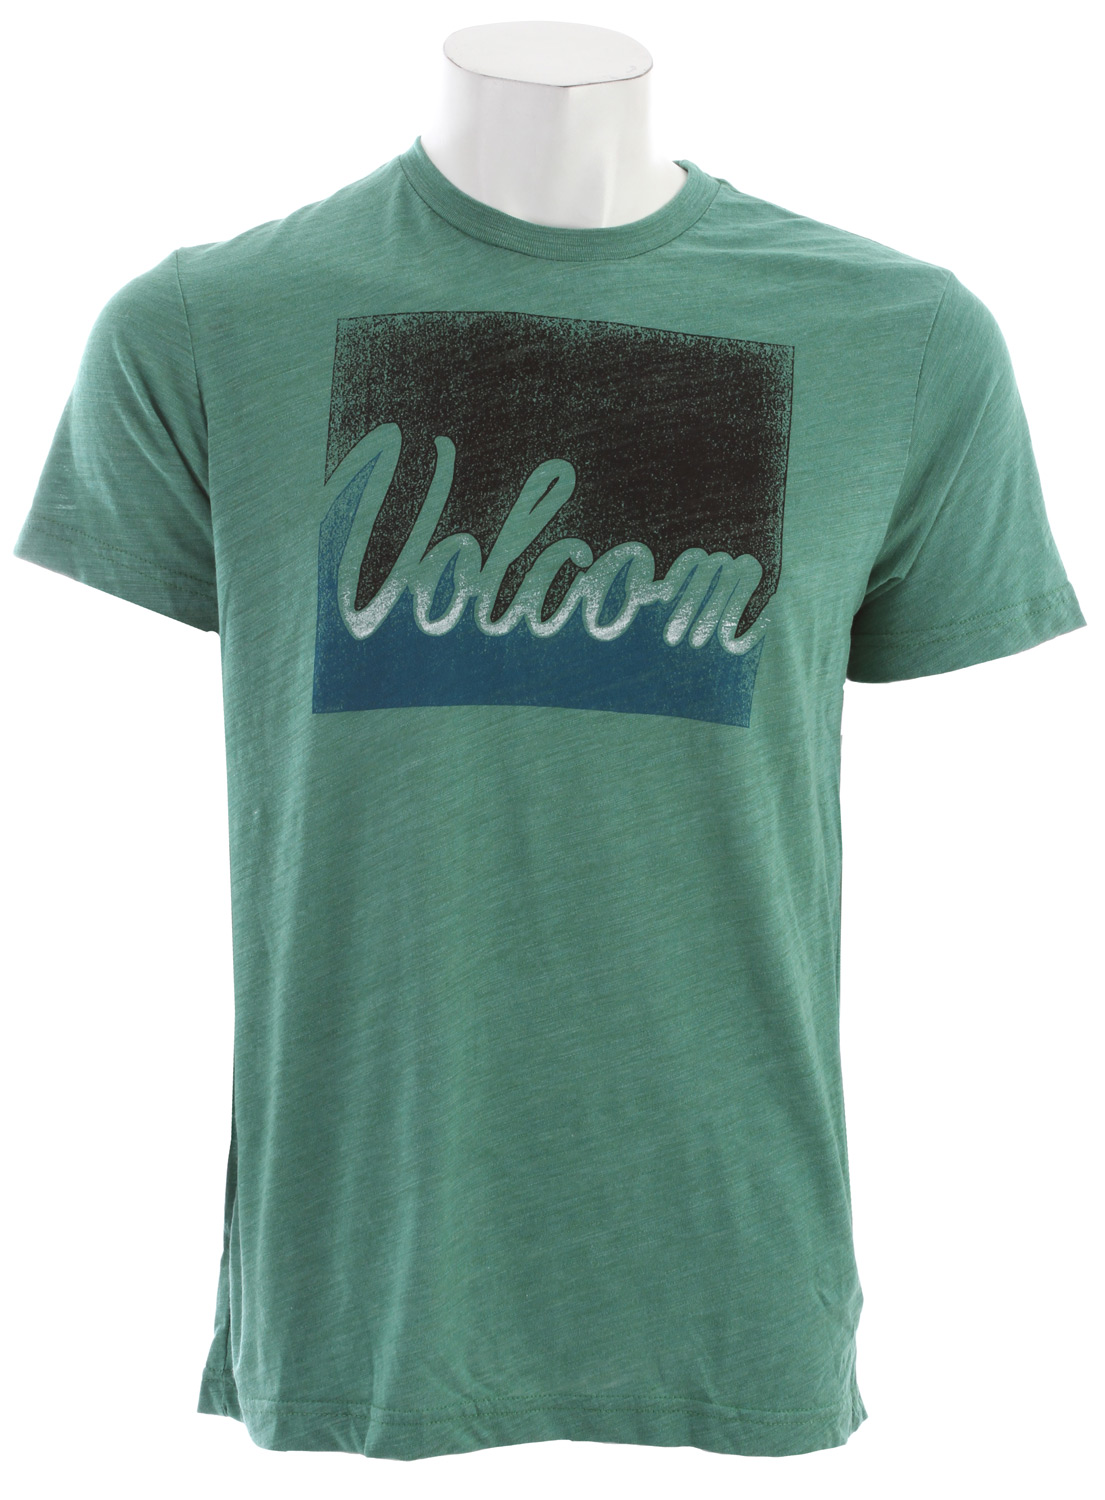 Surf Key Features of the Volcom Leave T-Shirt: Basic Screenprint Modern Fit 50% Polyester / 37% Cotton / 13% Rayon Tri Blend slub - $21.95